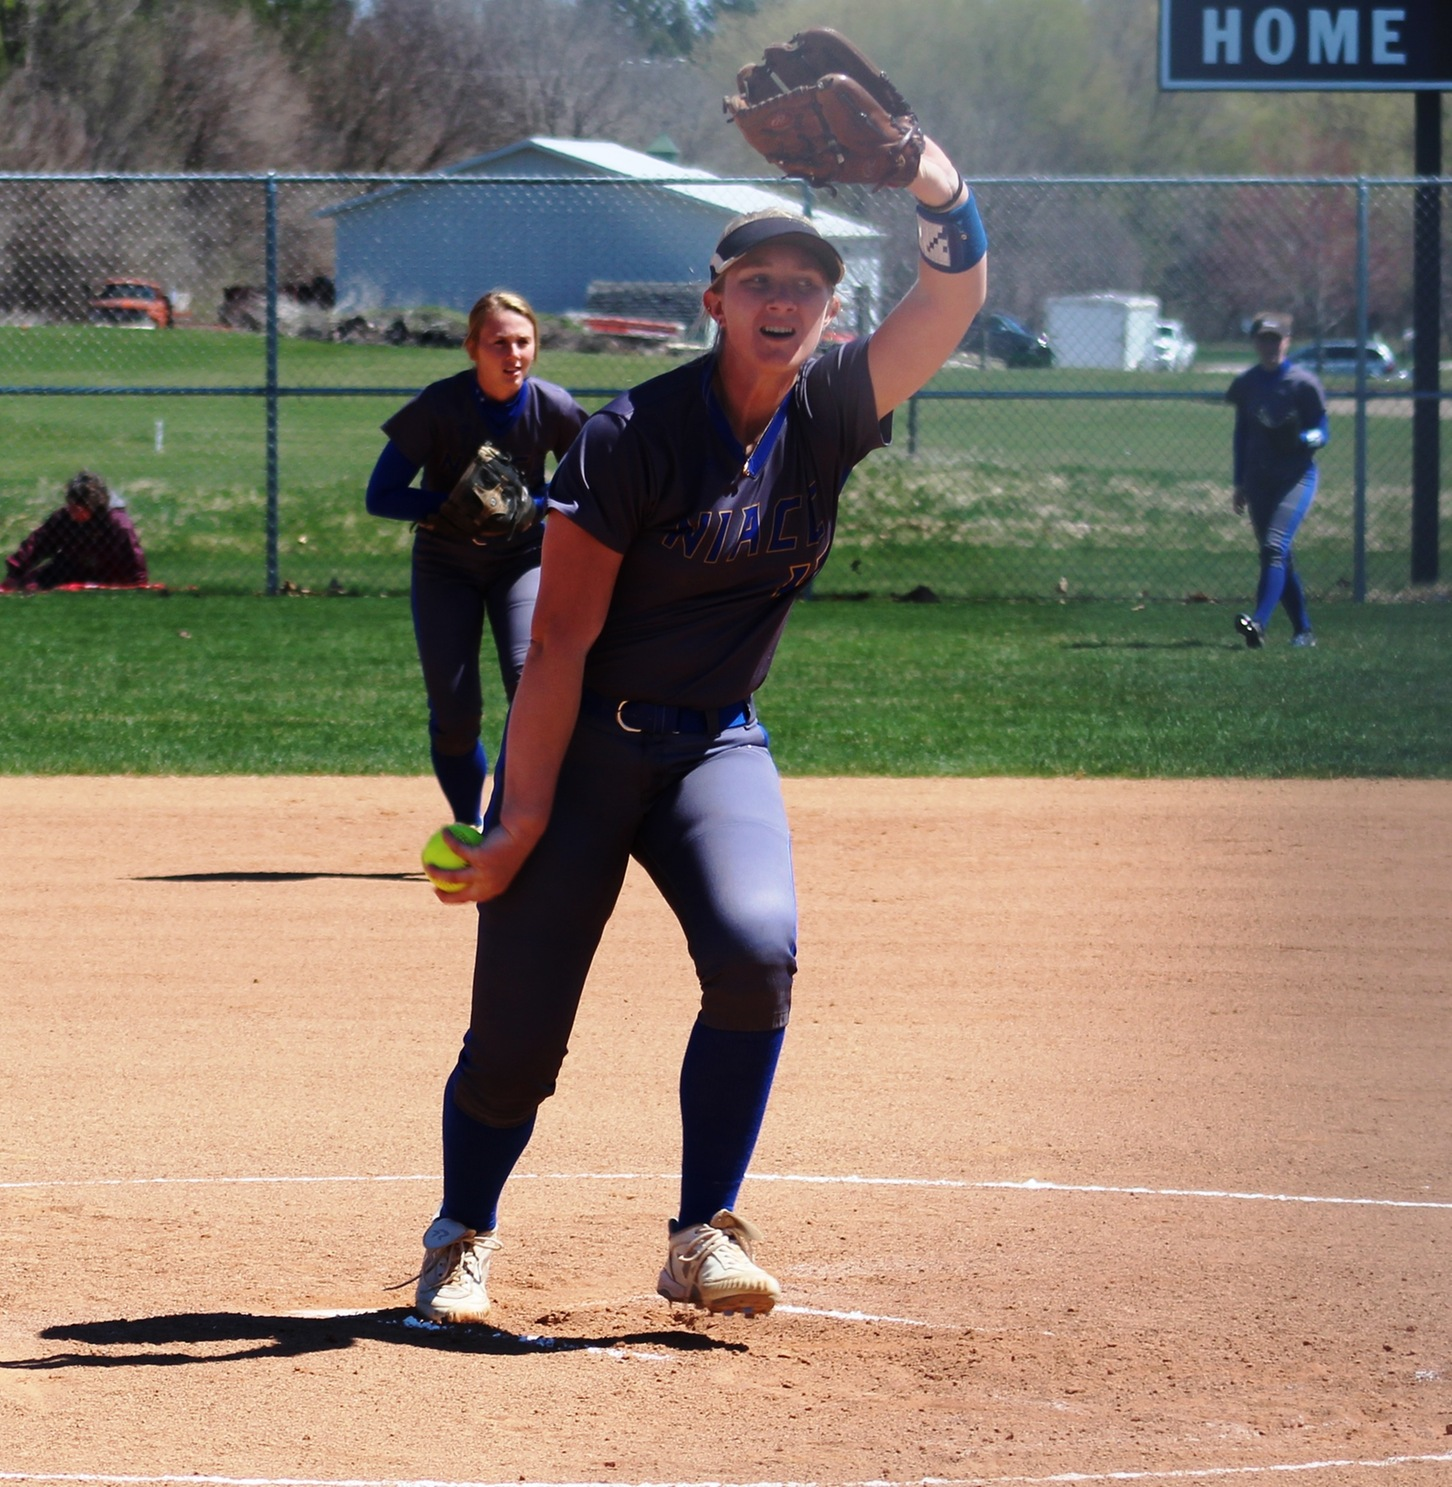 NIACC's Kristen Peka delivers a pitch in game at DMACC earlier this season.